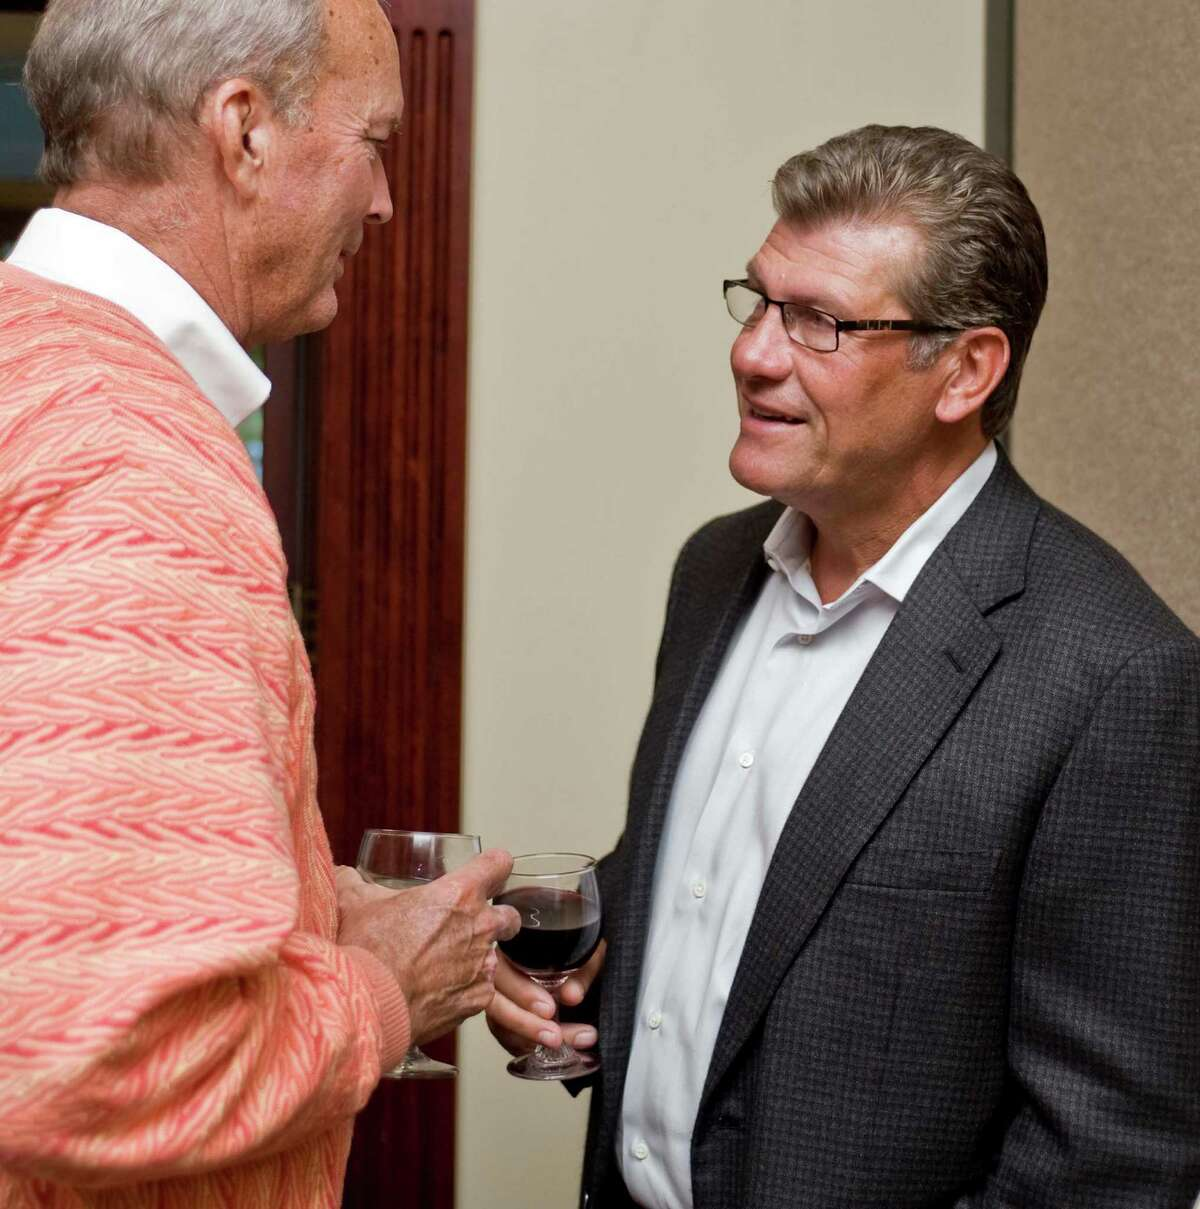 Philip Lodewick of Ridgefield chats with UConn women's basketball coach Geno Auriemma at the Amber Room Colonnade in Danbury where Coach Auriemma spoke at the UCONN Alumni Association dinner. Monday, Sept. 10, 2012